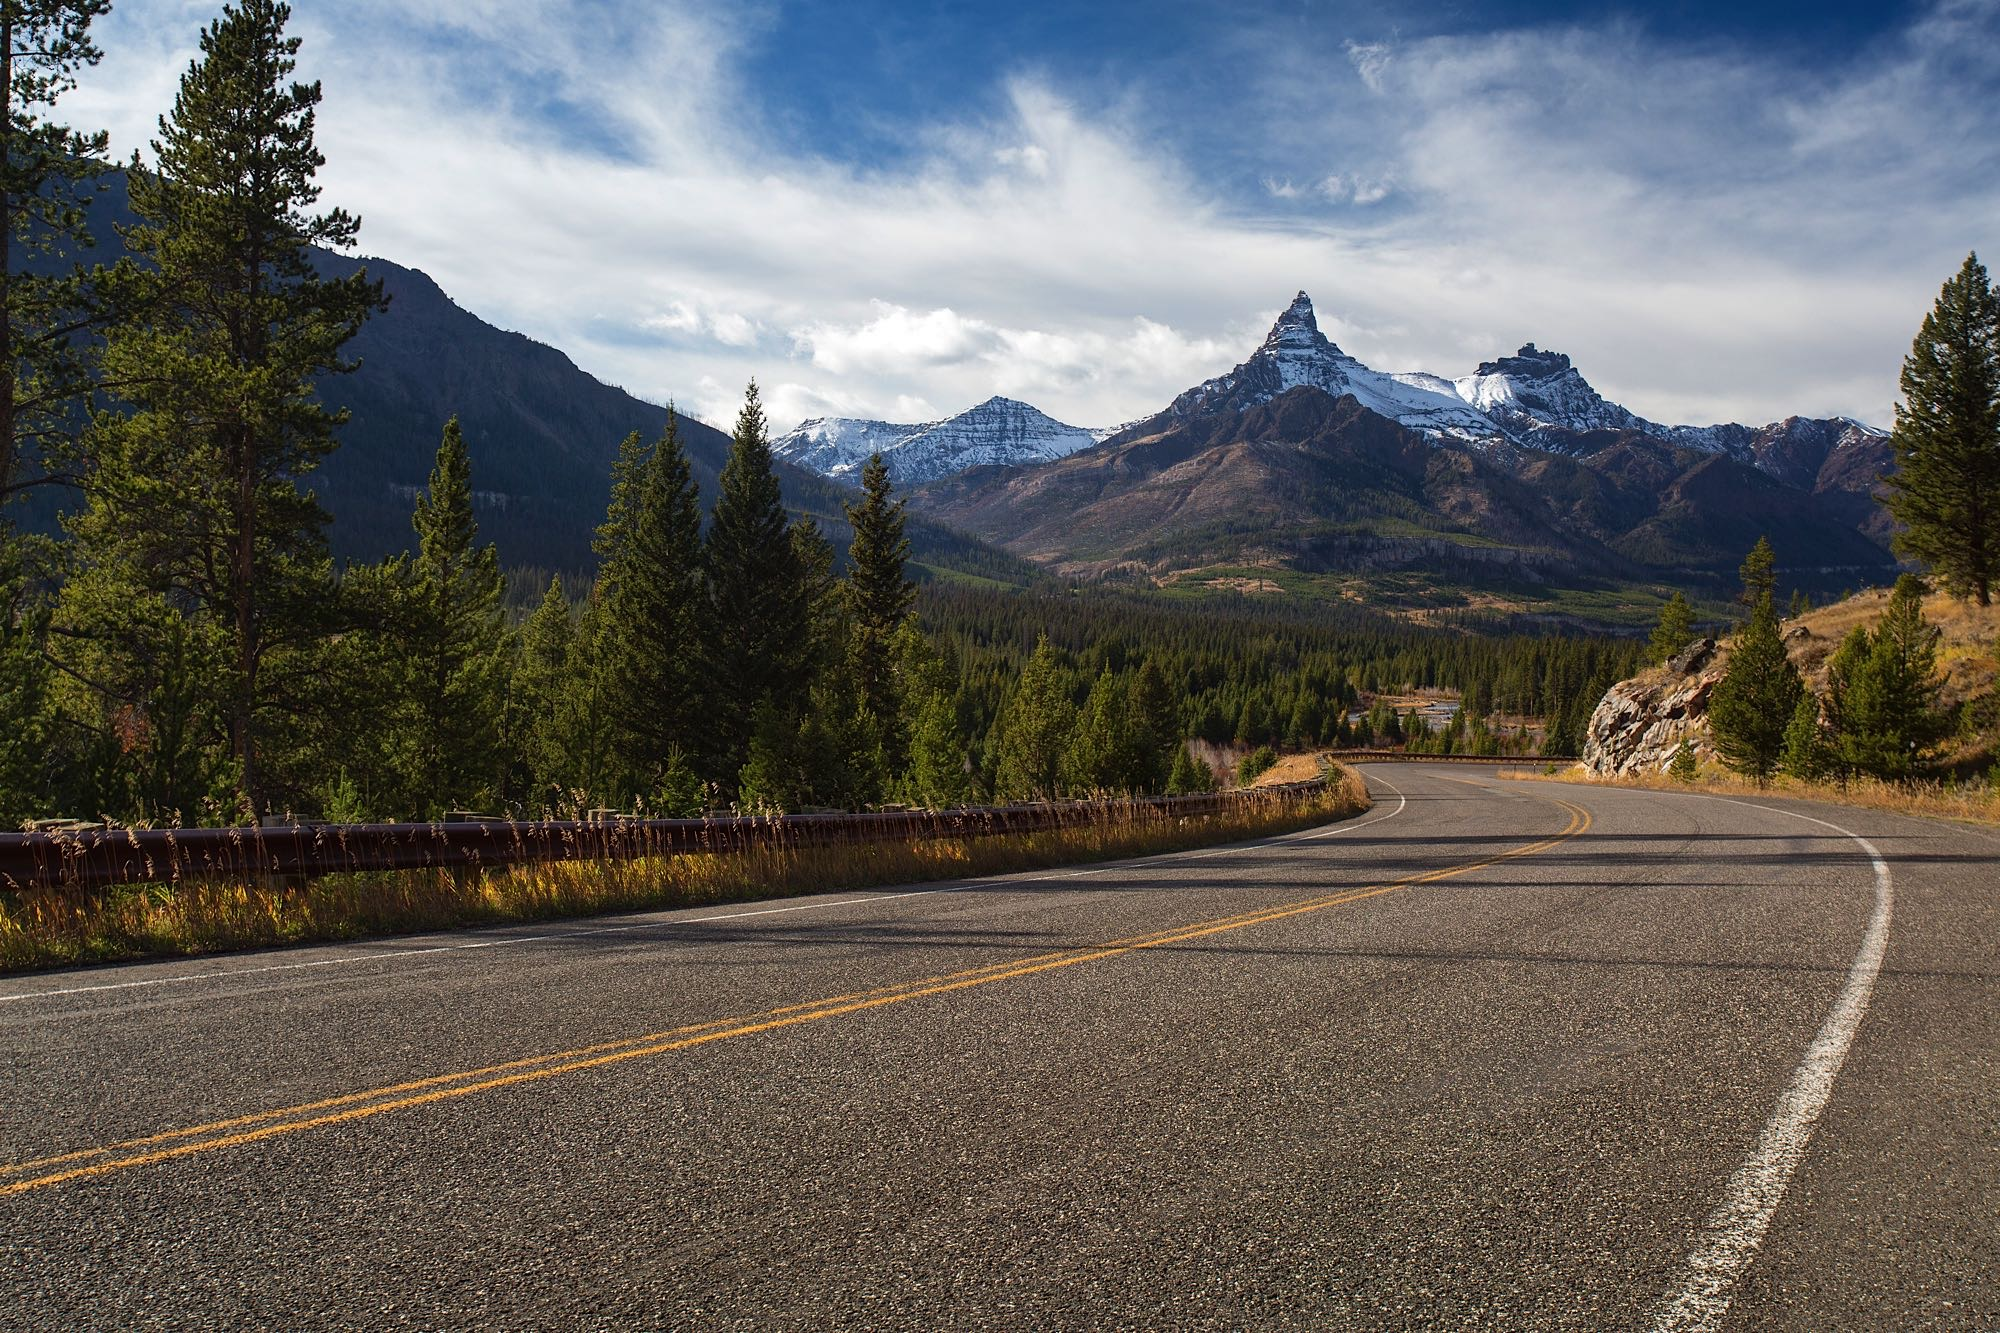 This pic is not of Glacier NP, but it is of the road that will lead us there :)